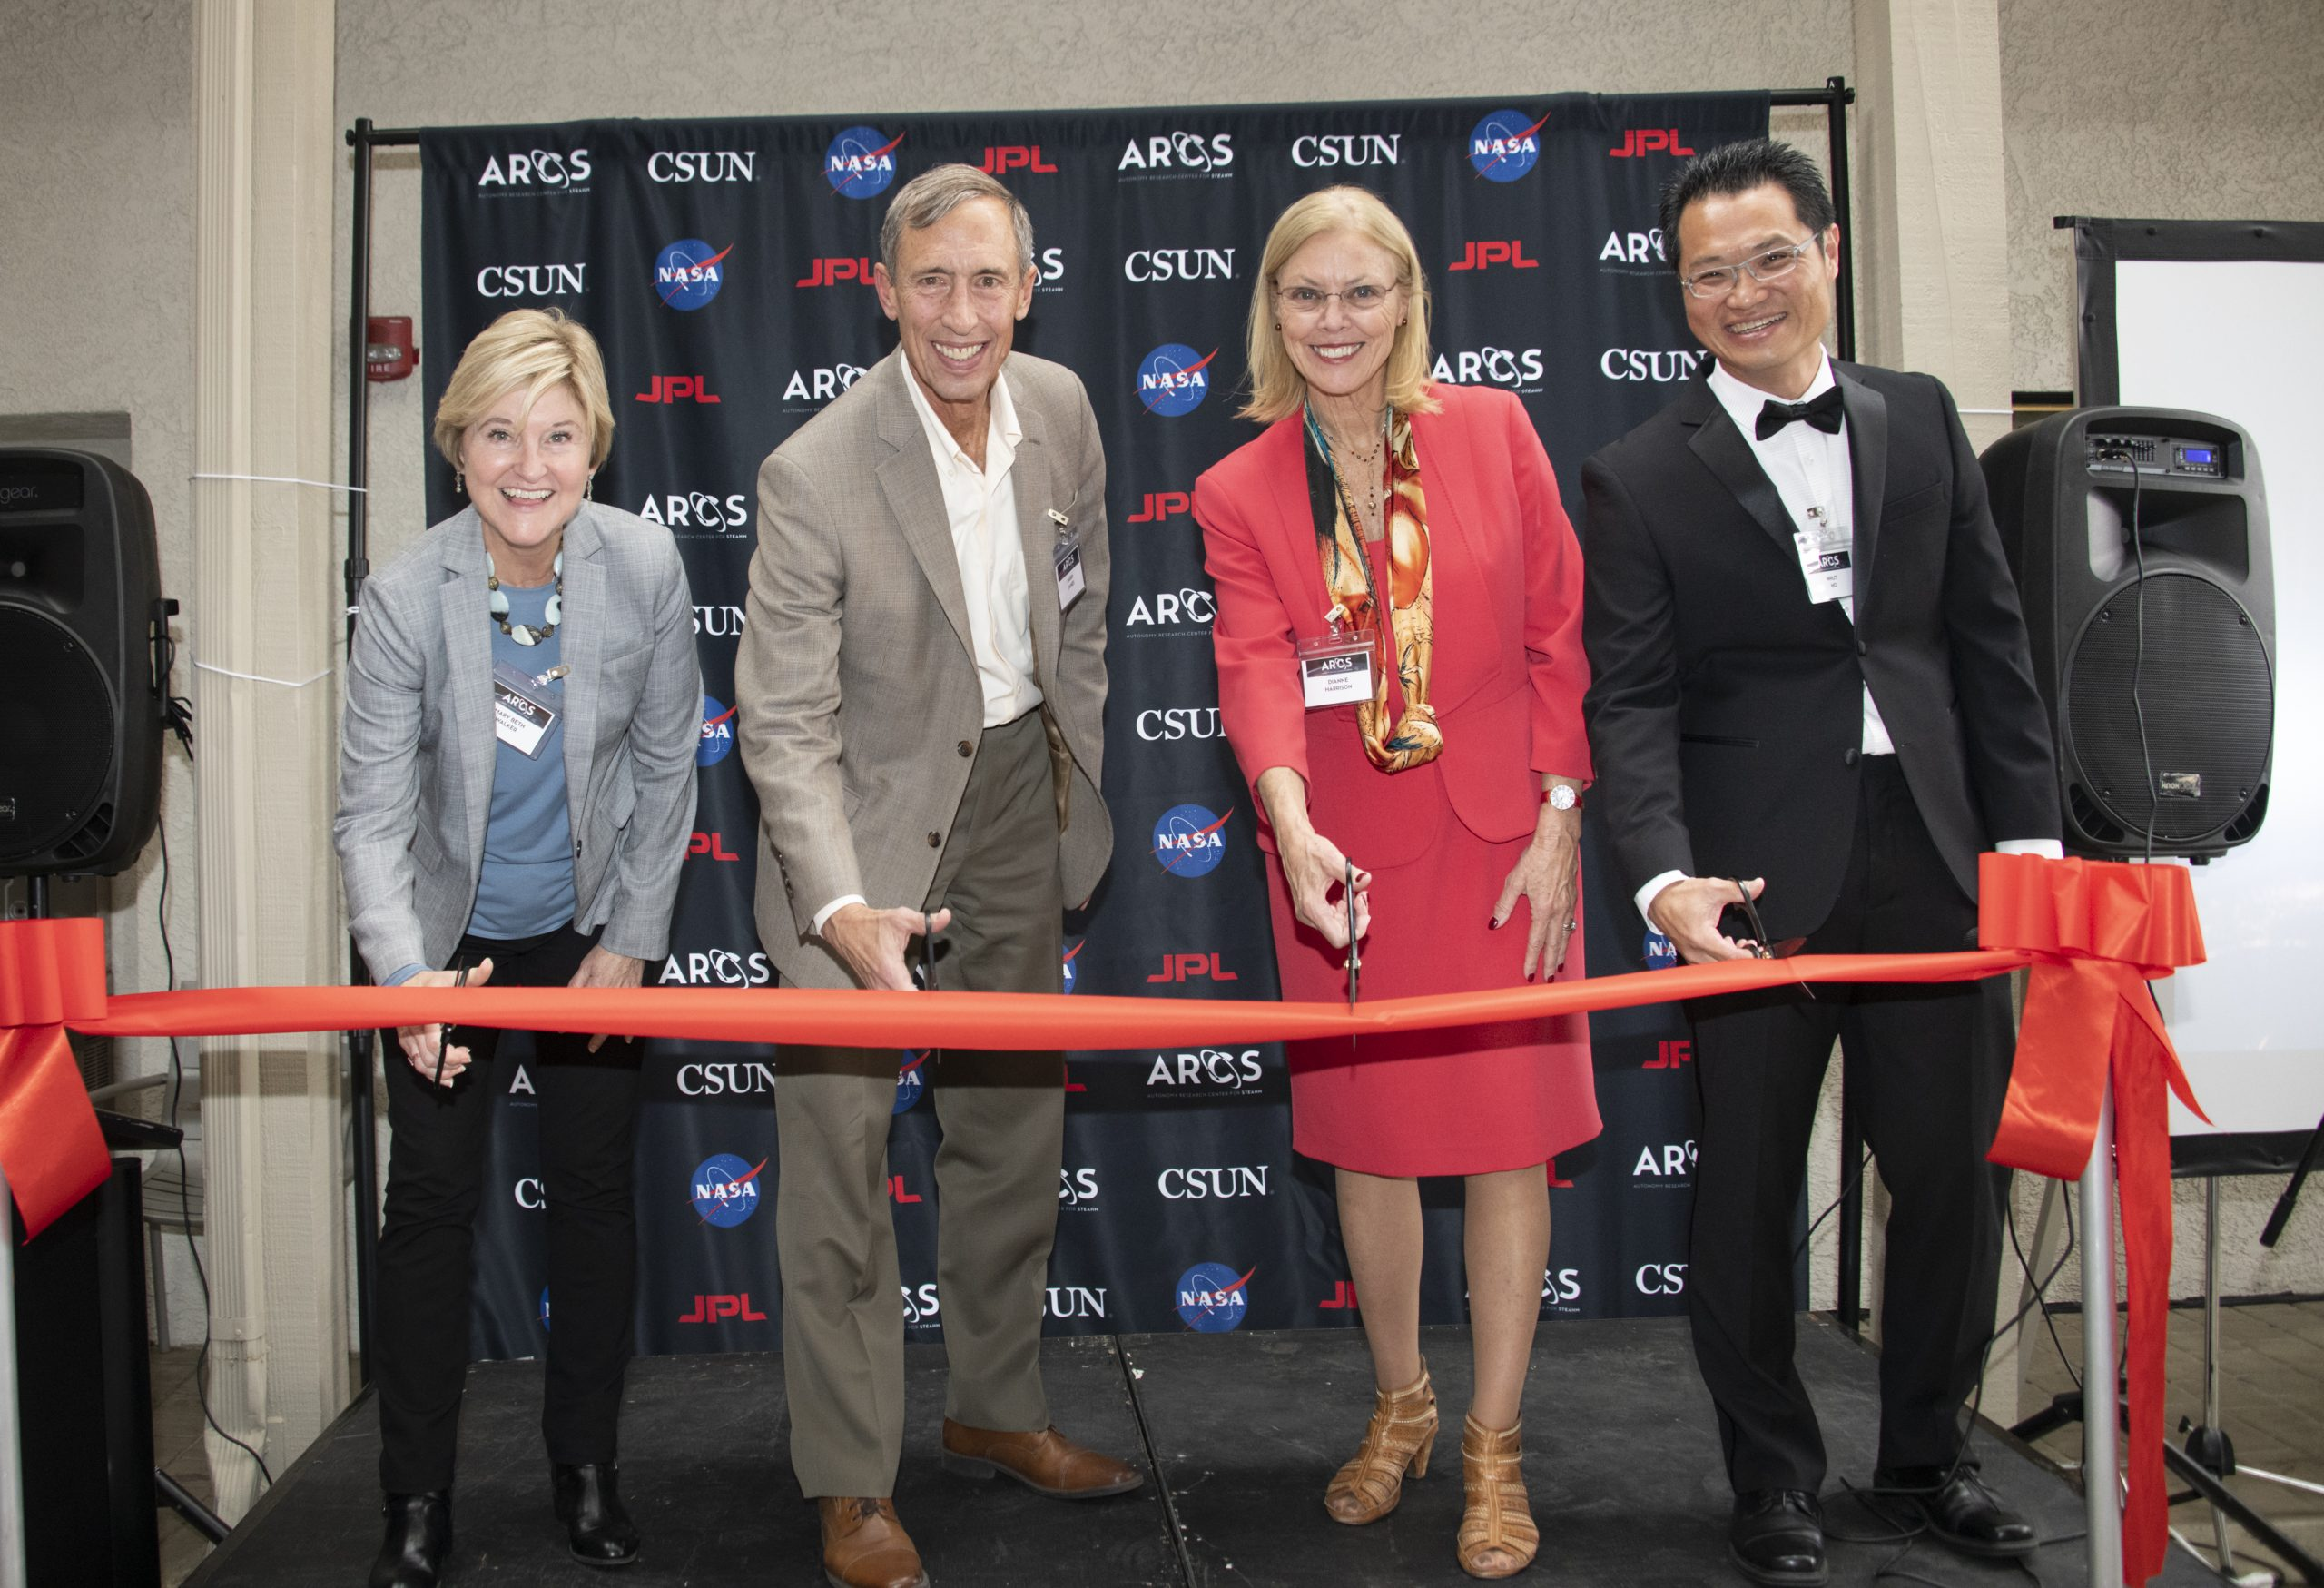 (L-R) CSUN Provost Mary Beth Walker, JPL Deputy Director Lt. Gen. Larry James, CSUN President Dianne Harrison and ARCS Founding Director Nhut Ho cut the ceremonial ribbon at ARCS opening event. Photo by Lee Choo, CSUN University Advancement